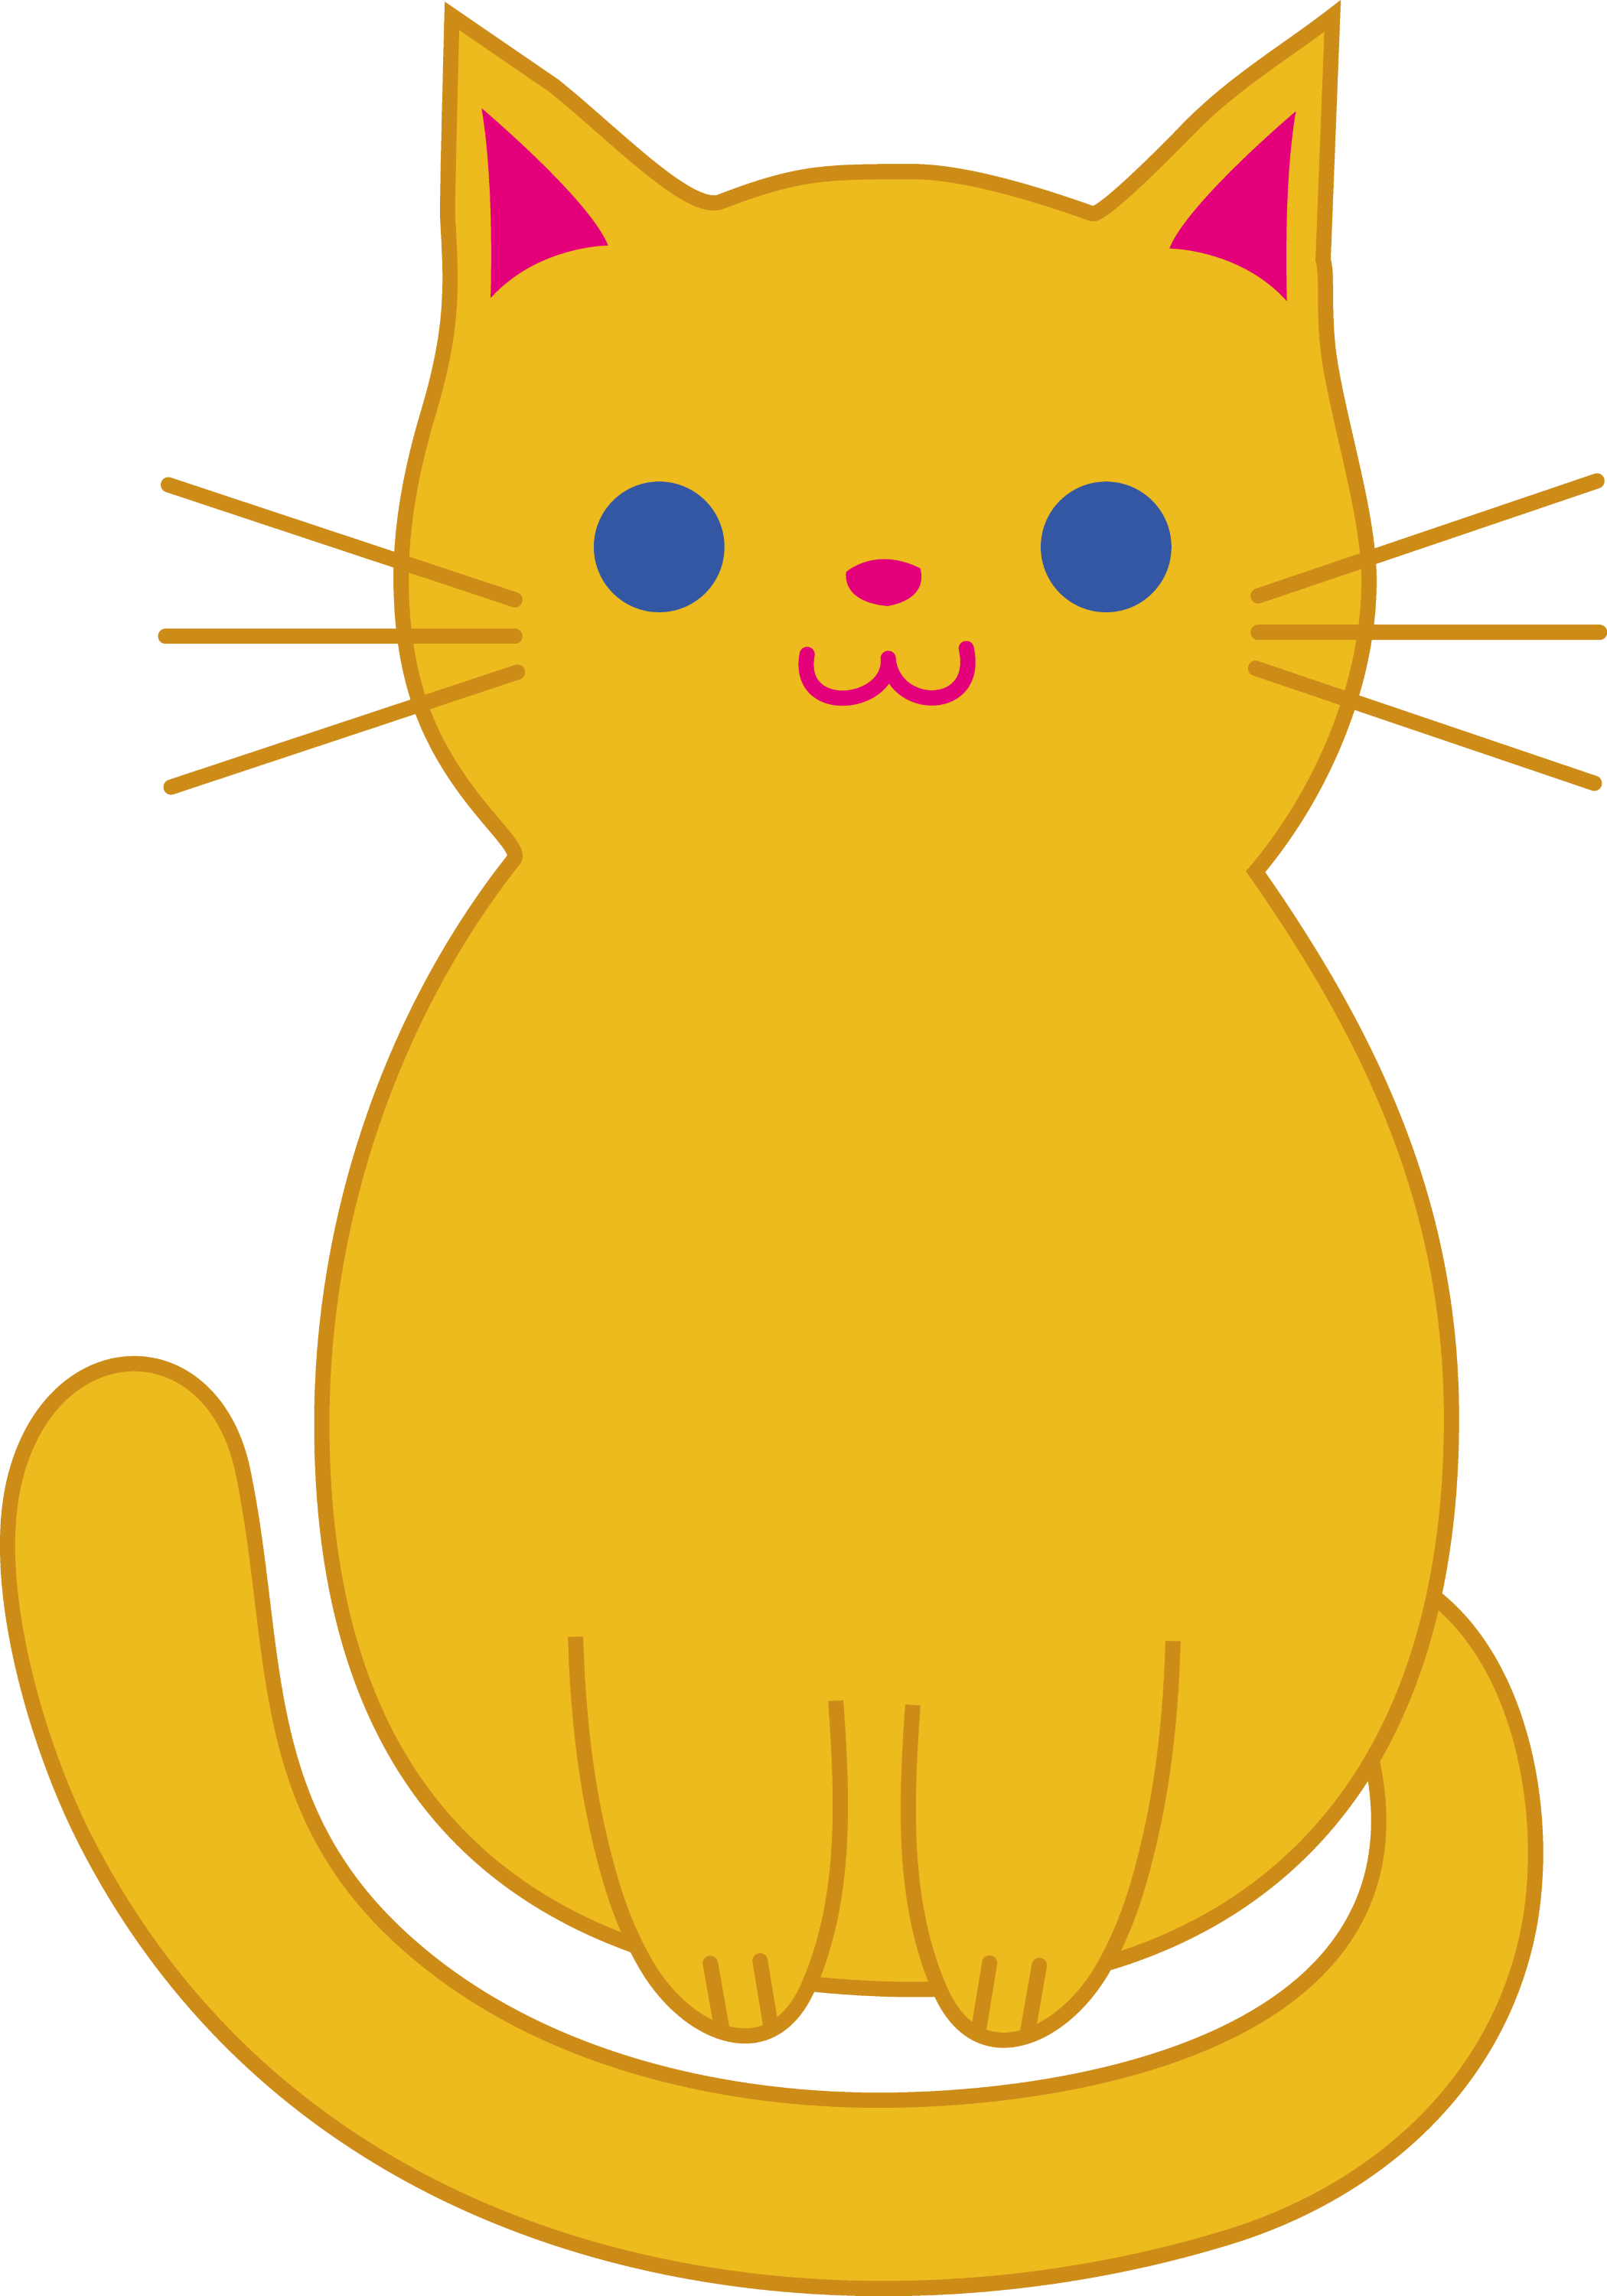 Cute Orange Cat Clip Art - Free Clip Art